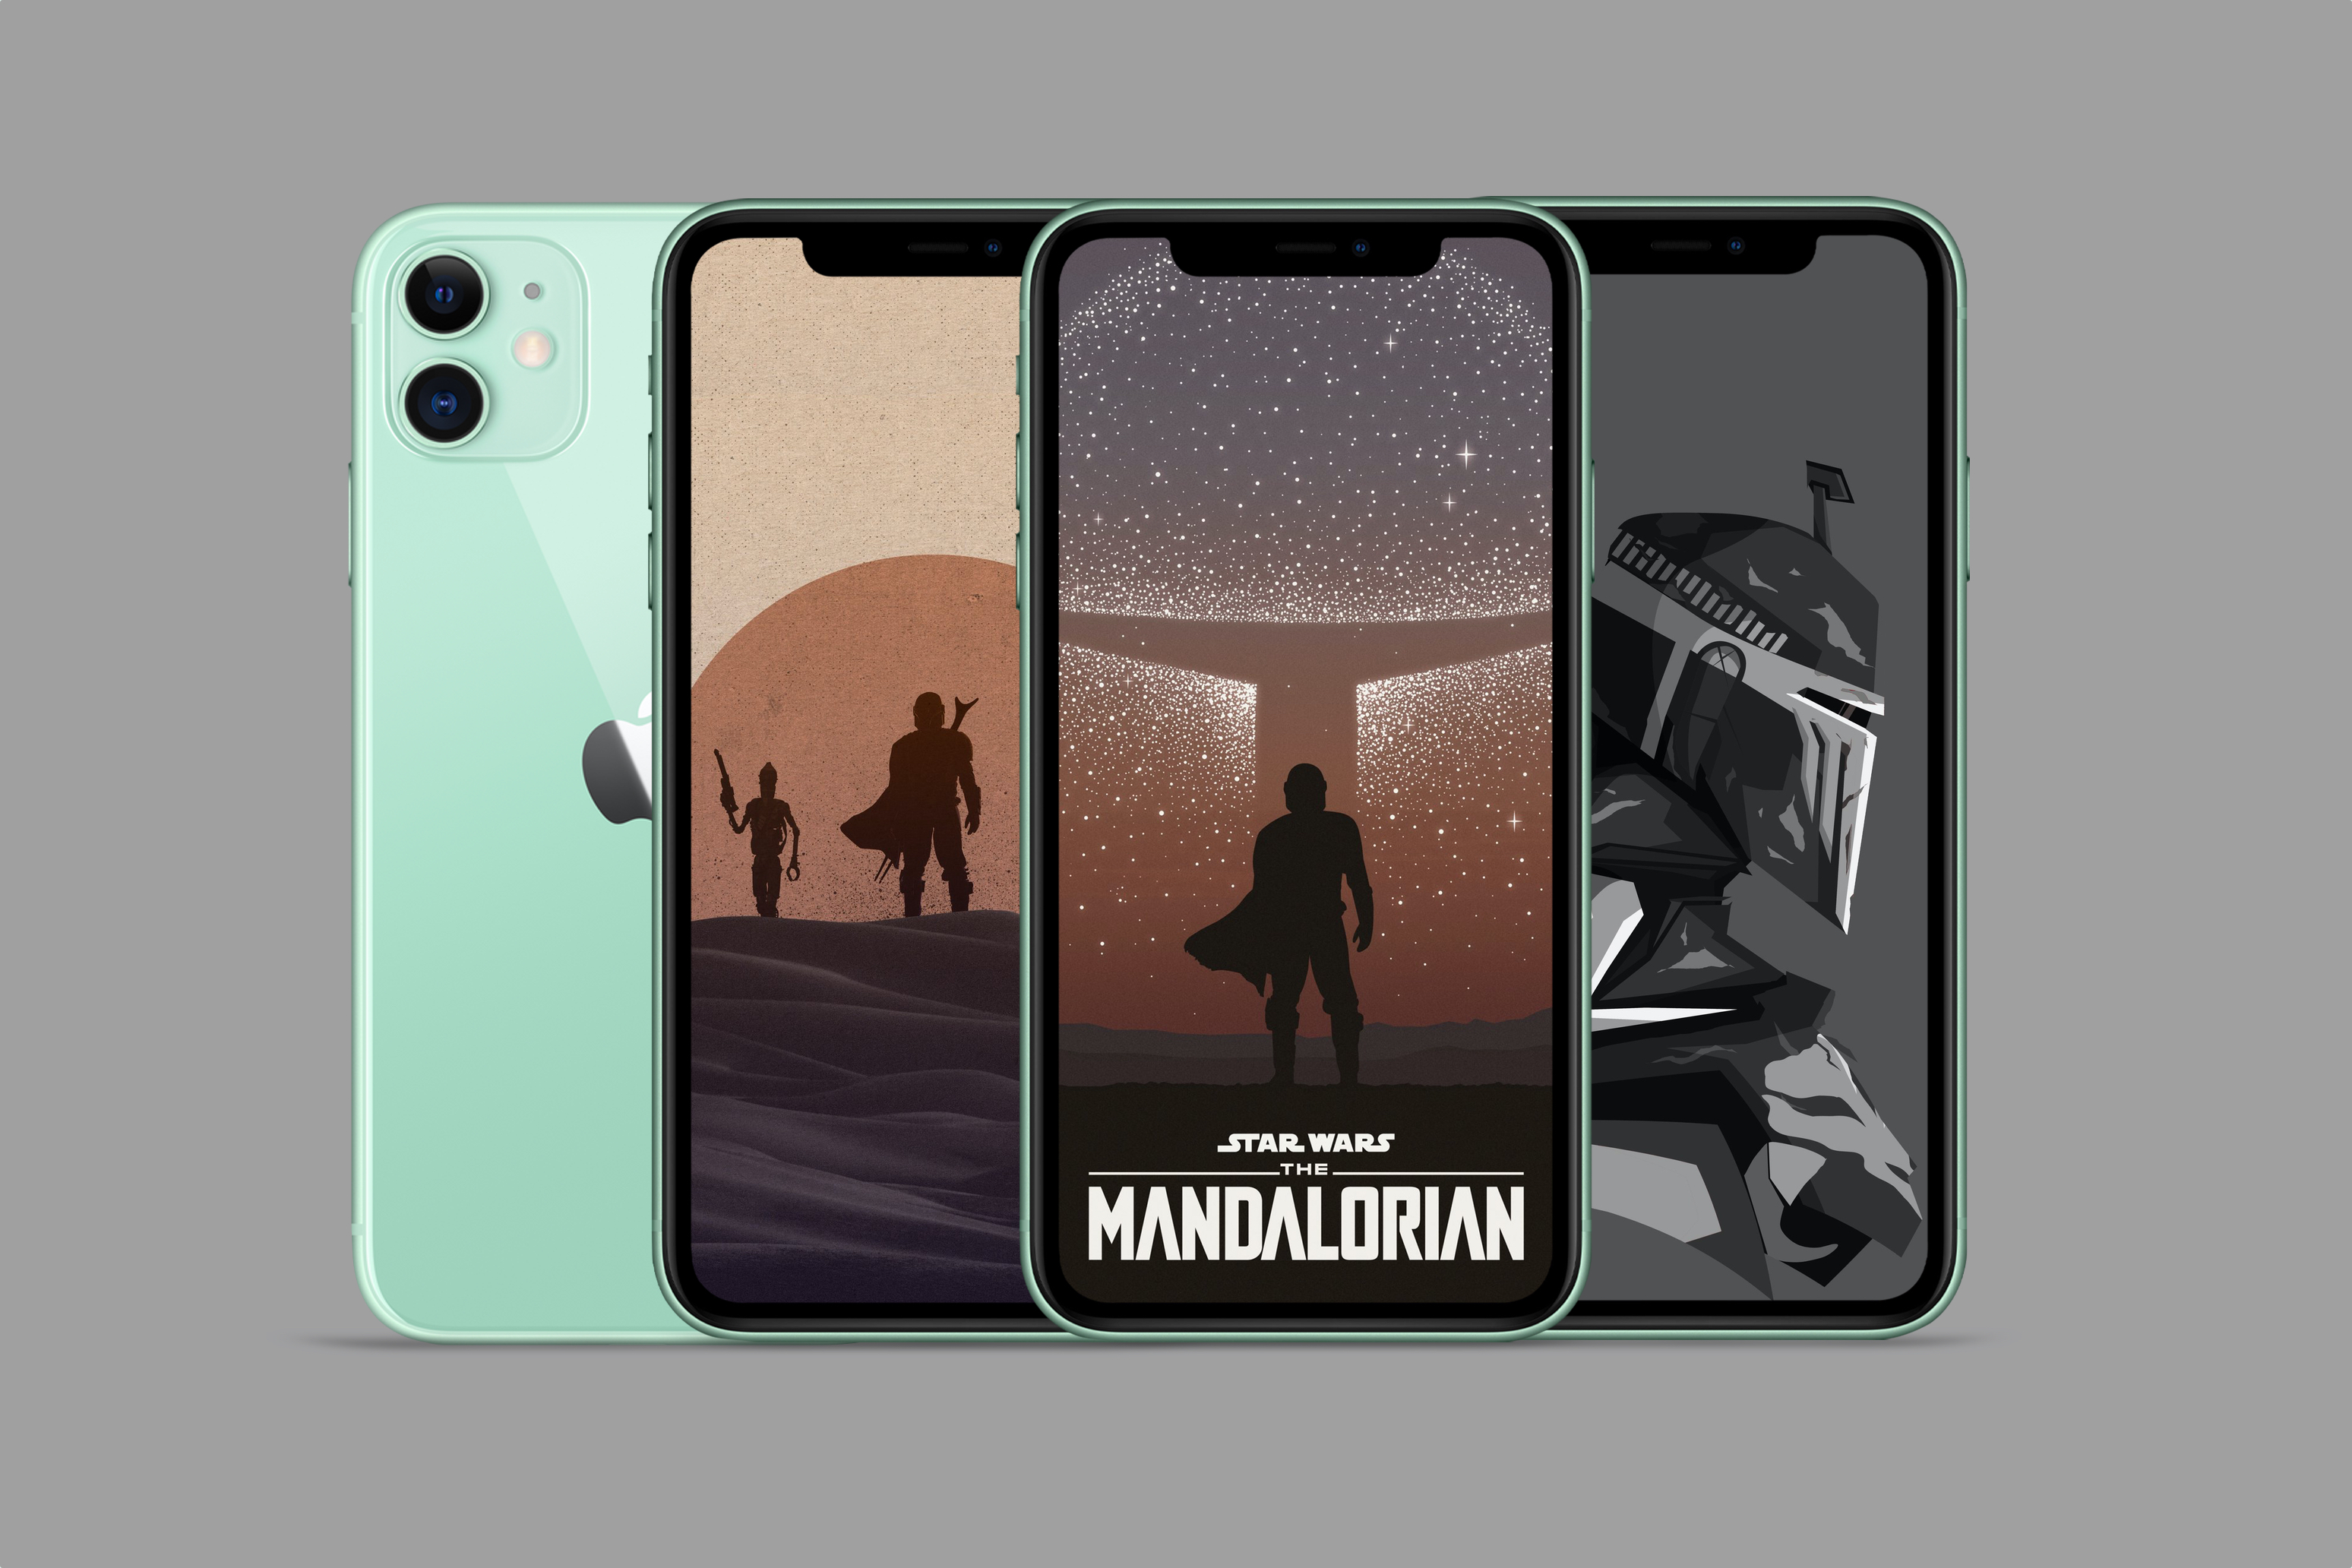 The Mandalorian Iphone Wallpapers